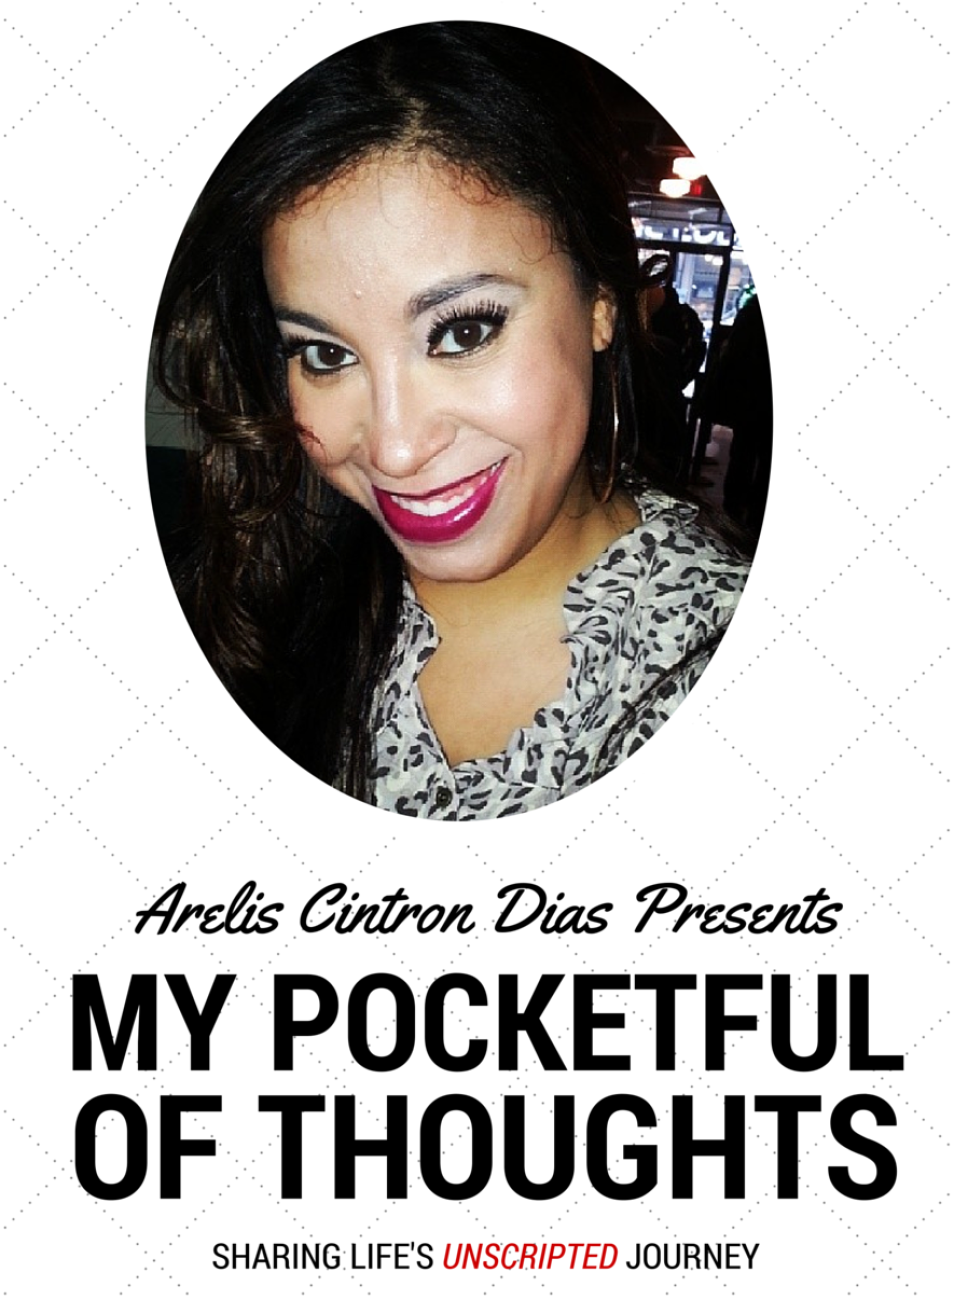 Arelis Cintron Dias presents My Pocketful of Thoughts